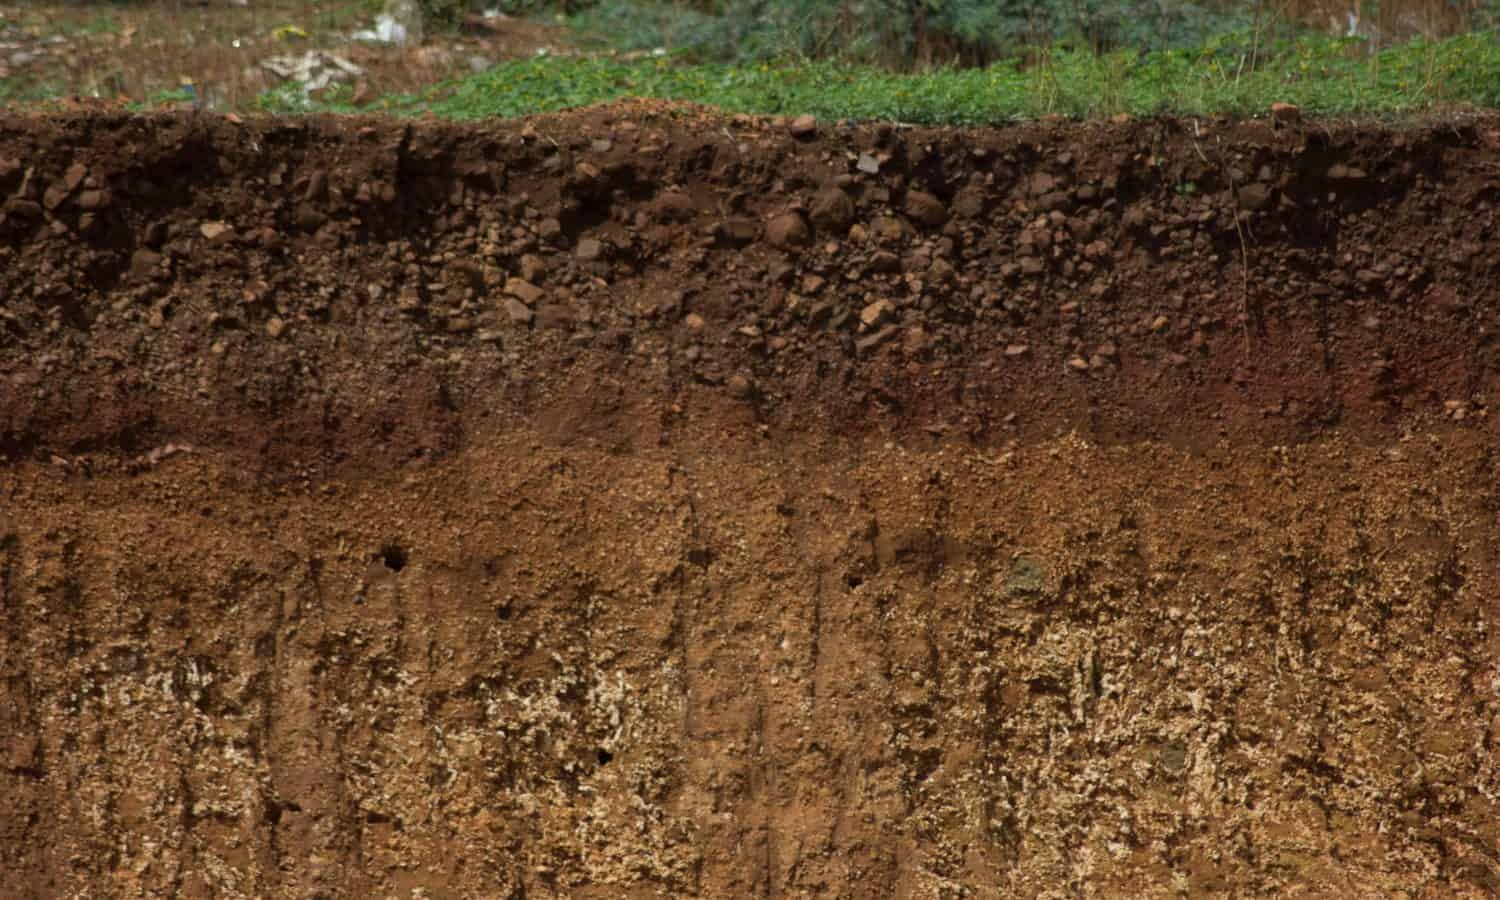 To celebrate World Soil Day, Food Tank is highlighting the work of 13 soil scientists from around the globe driving sustainable soil management.